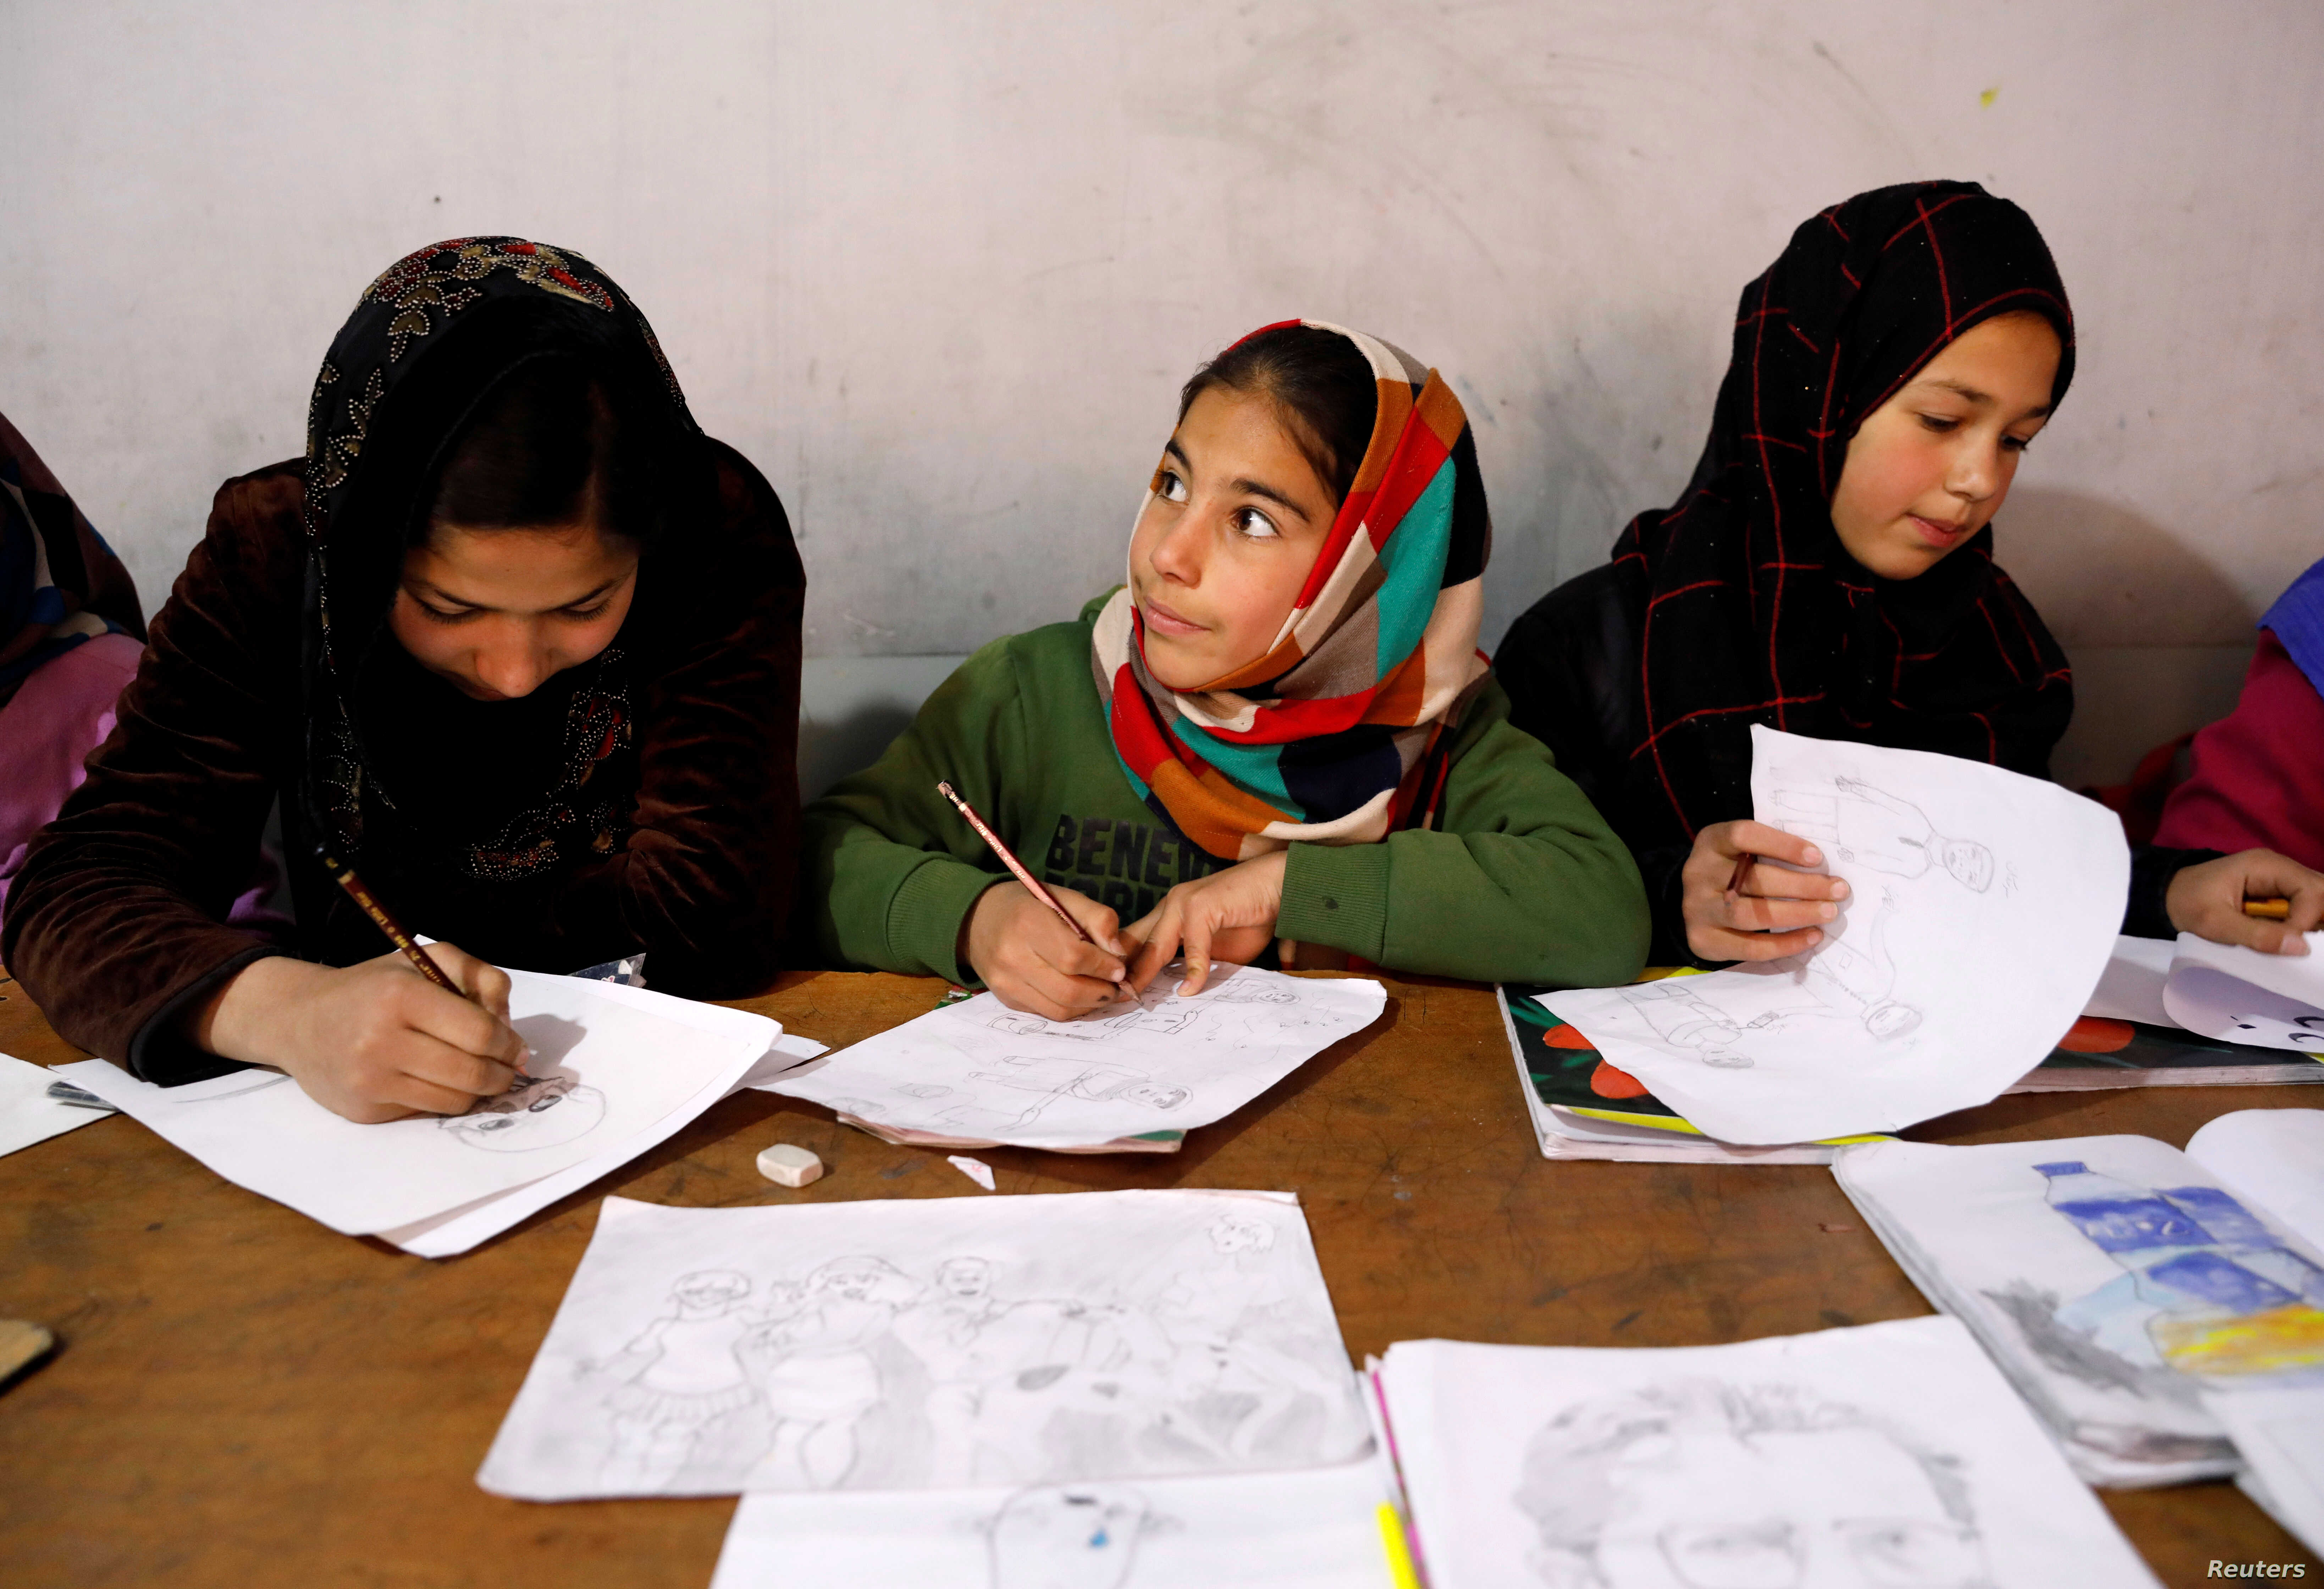 Afghan girls attend a class at the Aschiana center in Kabul, Afghanistan March 5, 2019.